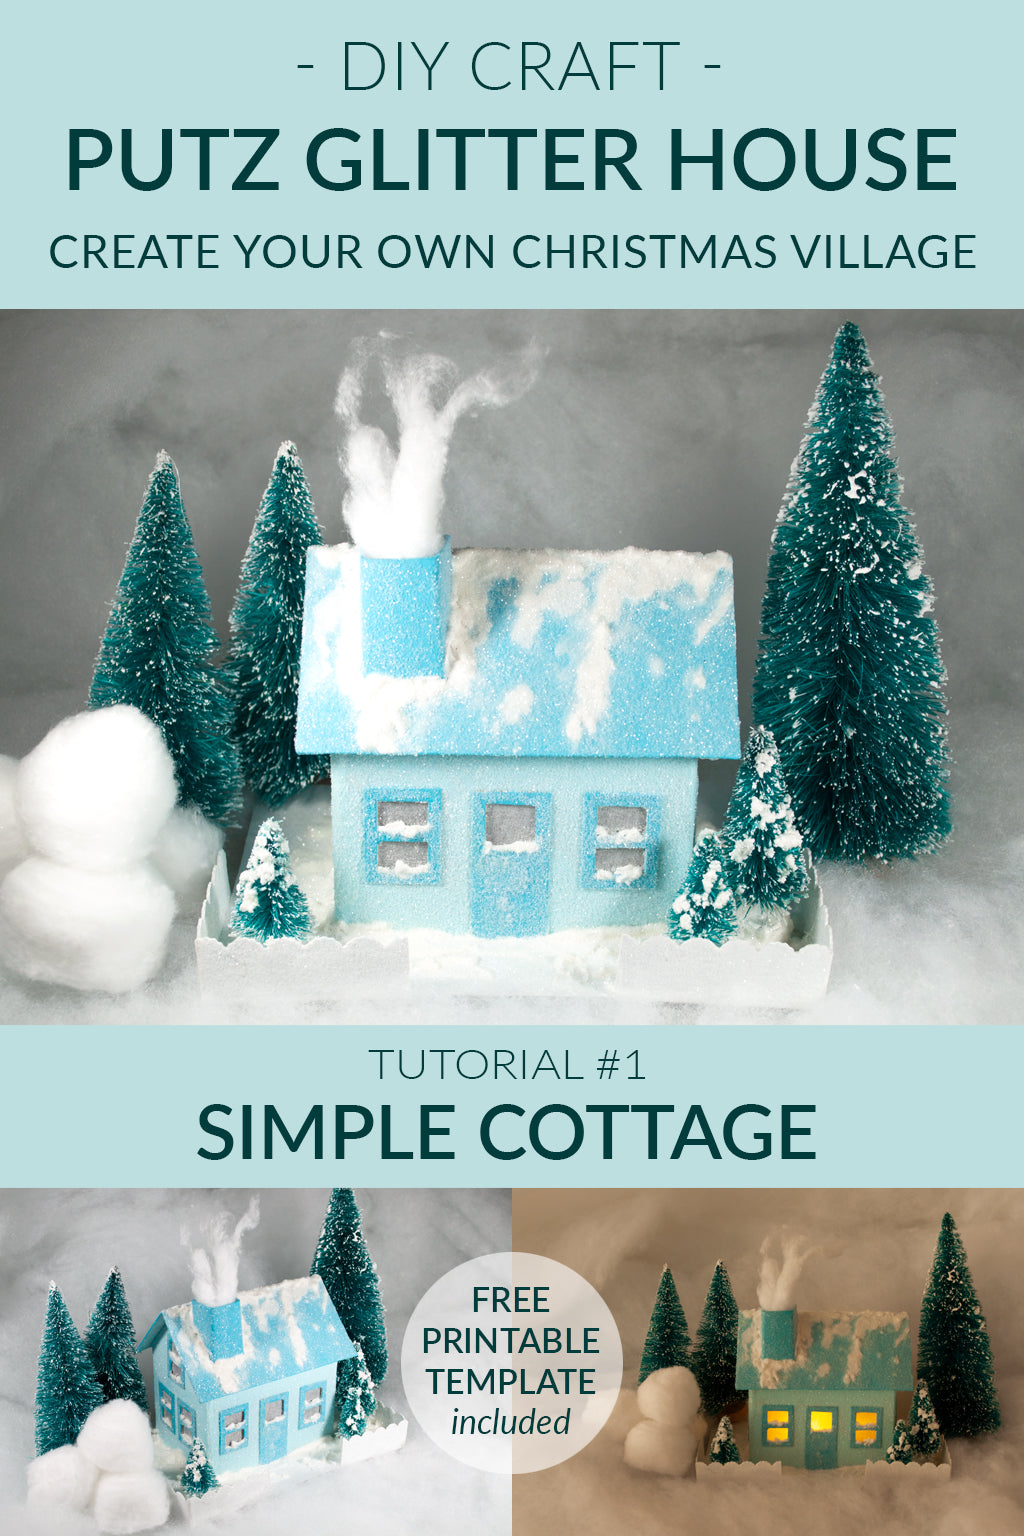 DIY Craft - Christmas Village Putz Glitter House - Tutorial # 1 - Simple Cottage - Free Printable Template Included